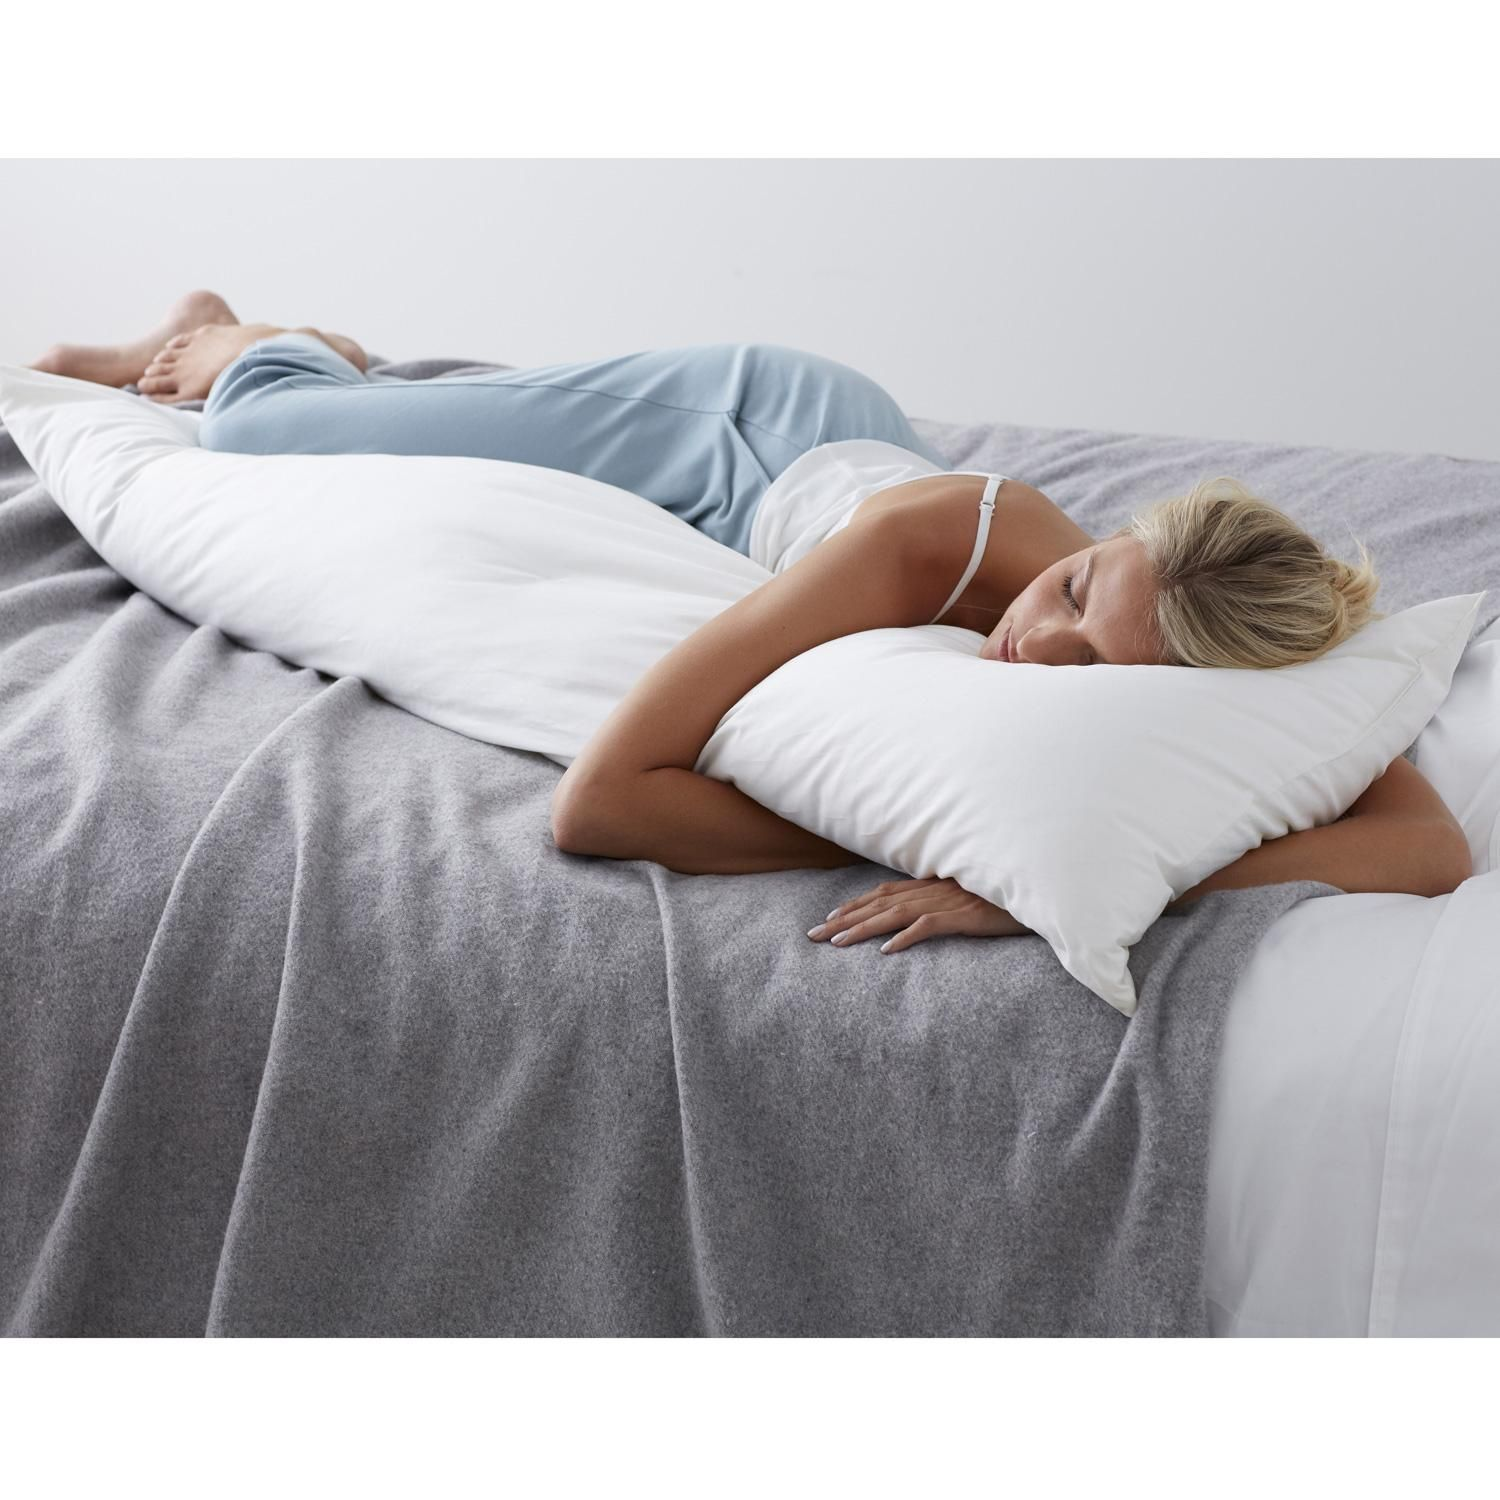 Tcs Down Free Fill Body Pillow Medium Firmness At The Company